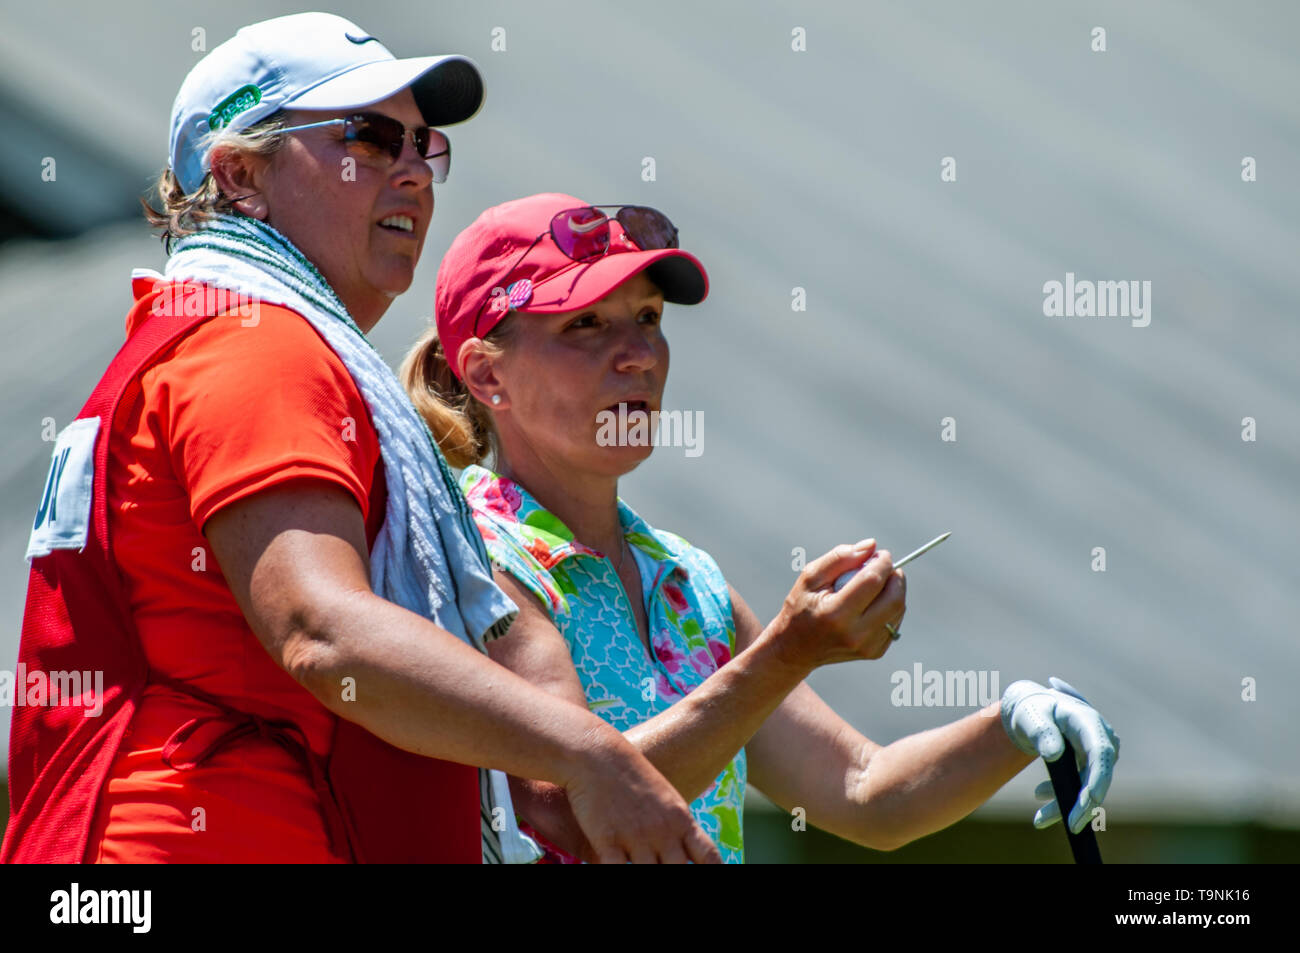 Southern Pines, North Carolina, USA. 19th May, 2019. May 19, 2019 - Southern Pines, North Carolina, US - SUZY GREEN-ROEBUCK of Ann Arbor, Michigan talks with her caddie on the ninth tee during the final round of the USGA's 2nd U.S. Senior Women's Open Championship at Pine Needles Lodge & Golf Club, May 19, 2019 in Southern Pines, North Carolina. HELEN ALFREDSSON of Sweden won with a final round of 72, carding a 285 total for the tournament. Credit: Timothy L. Hale/ZUMA Wire/Alamy Live News - Stock Image